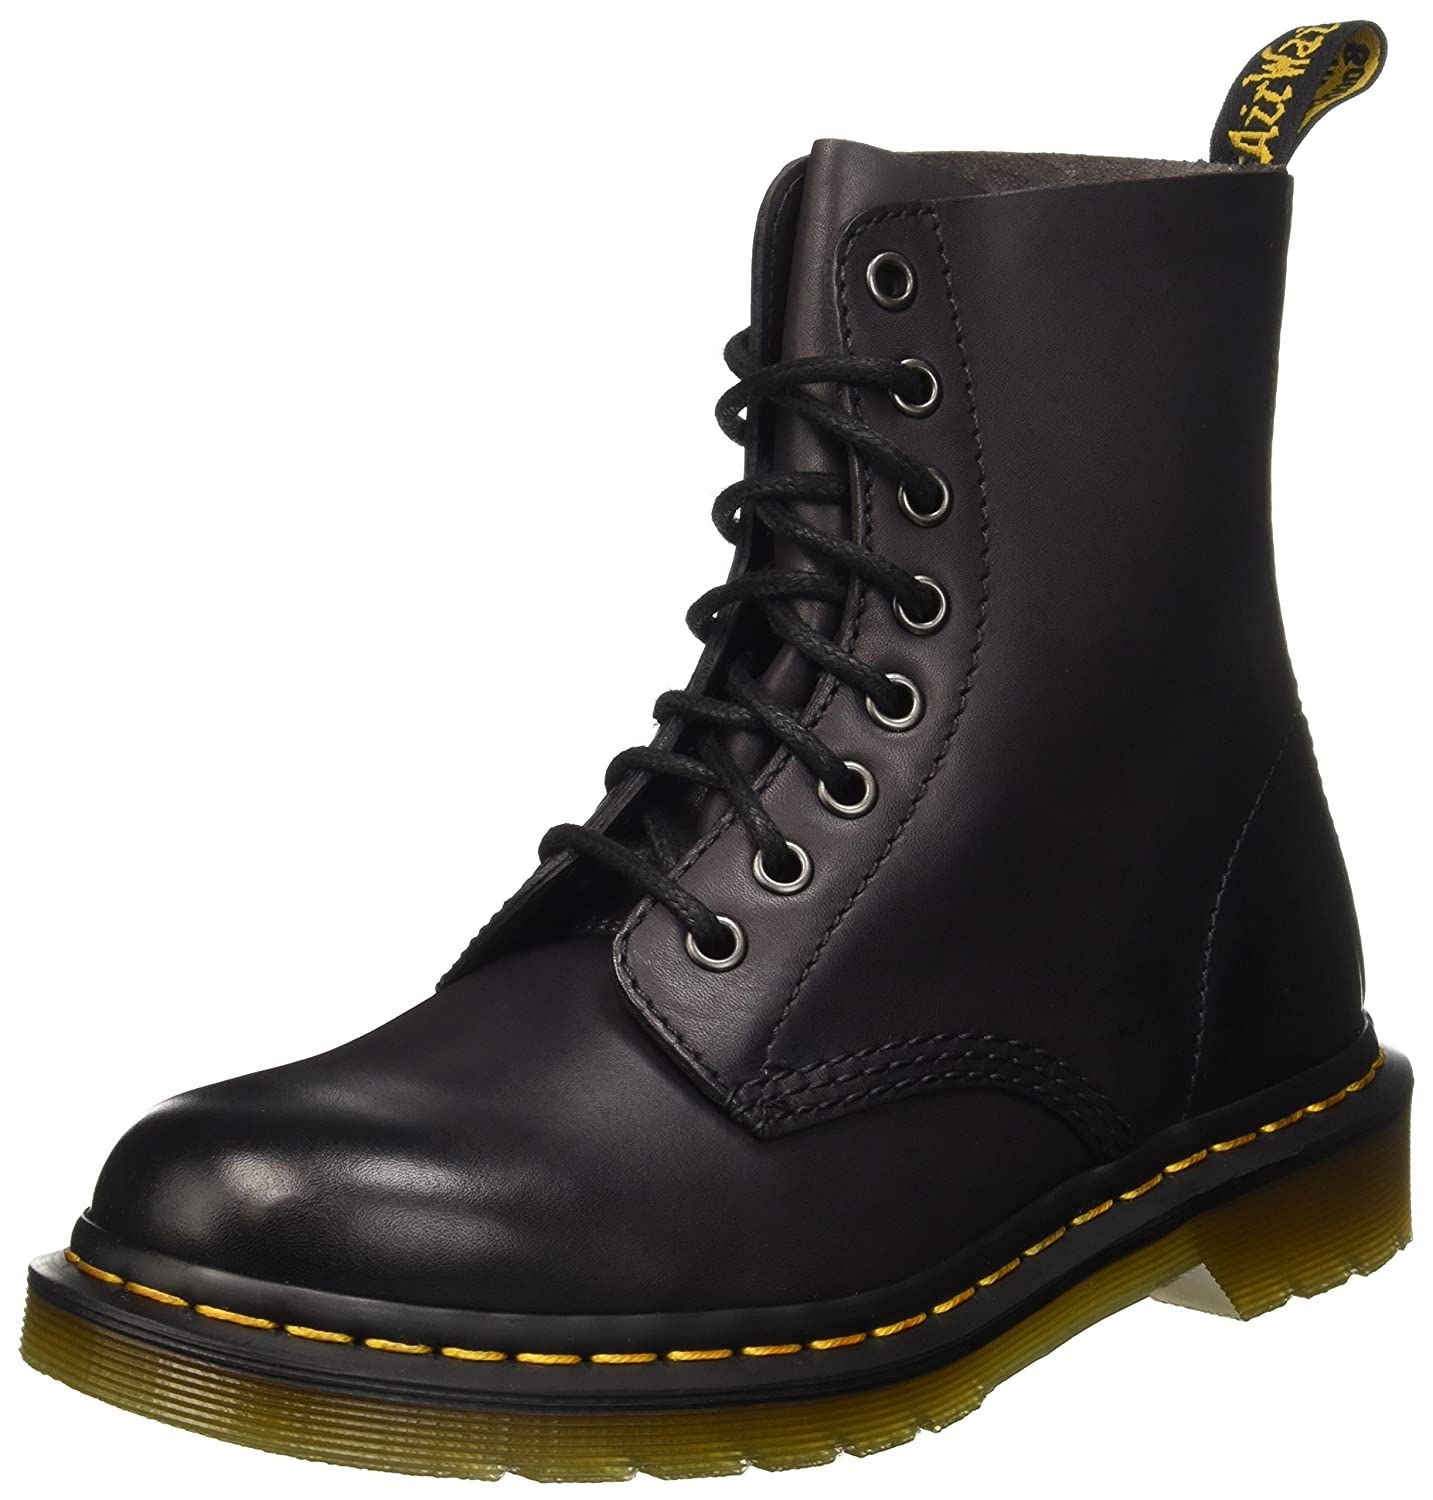 Dr. Martens Unisex-Erwachsene Pascal Charcoal Antique Temperley High-Top